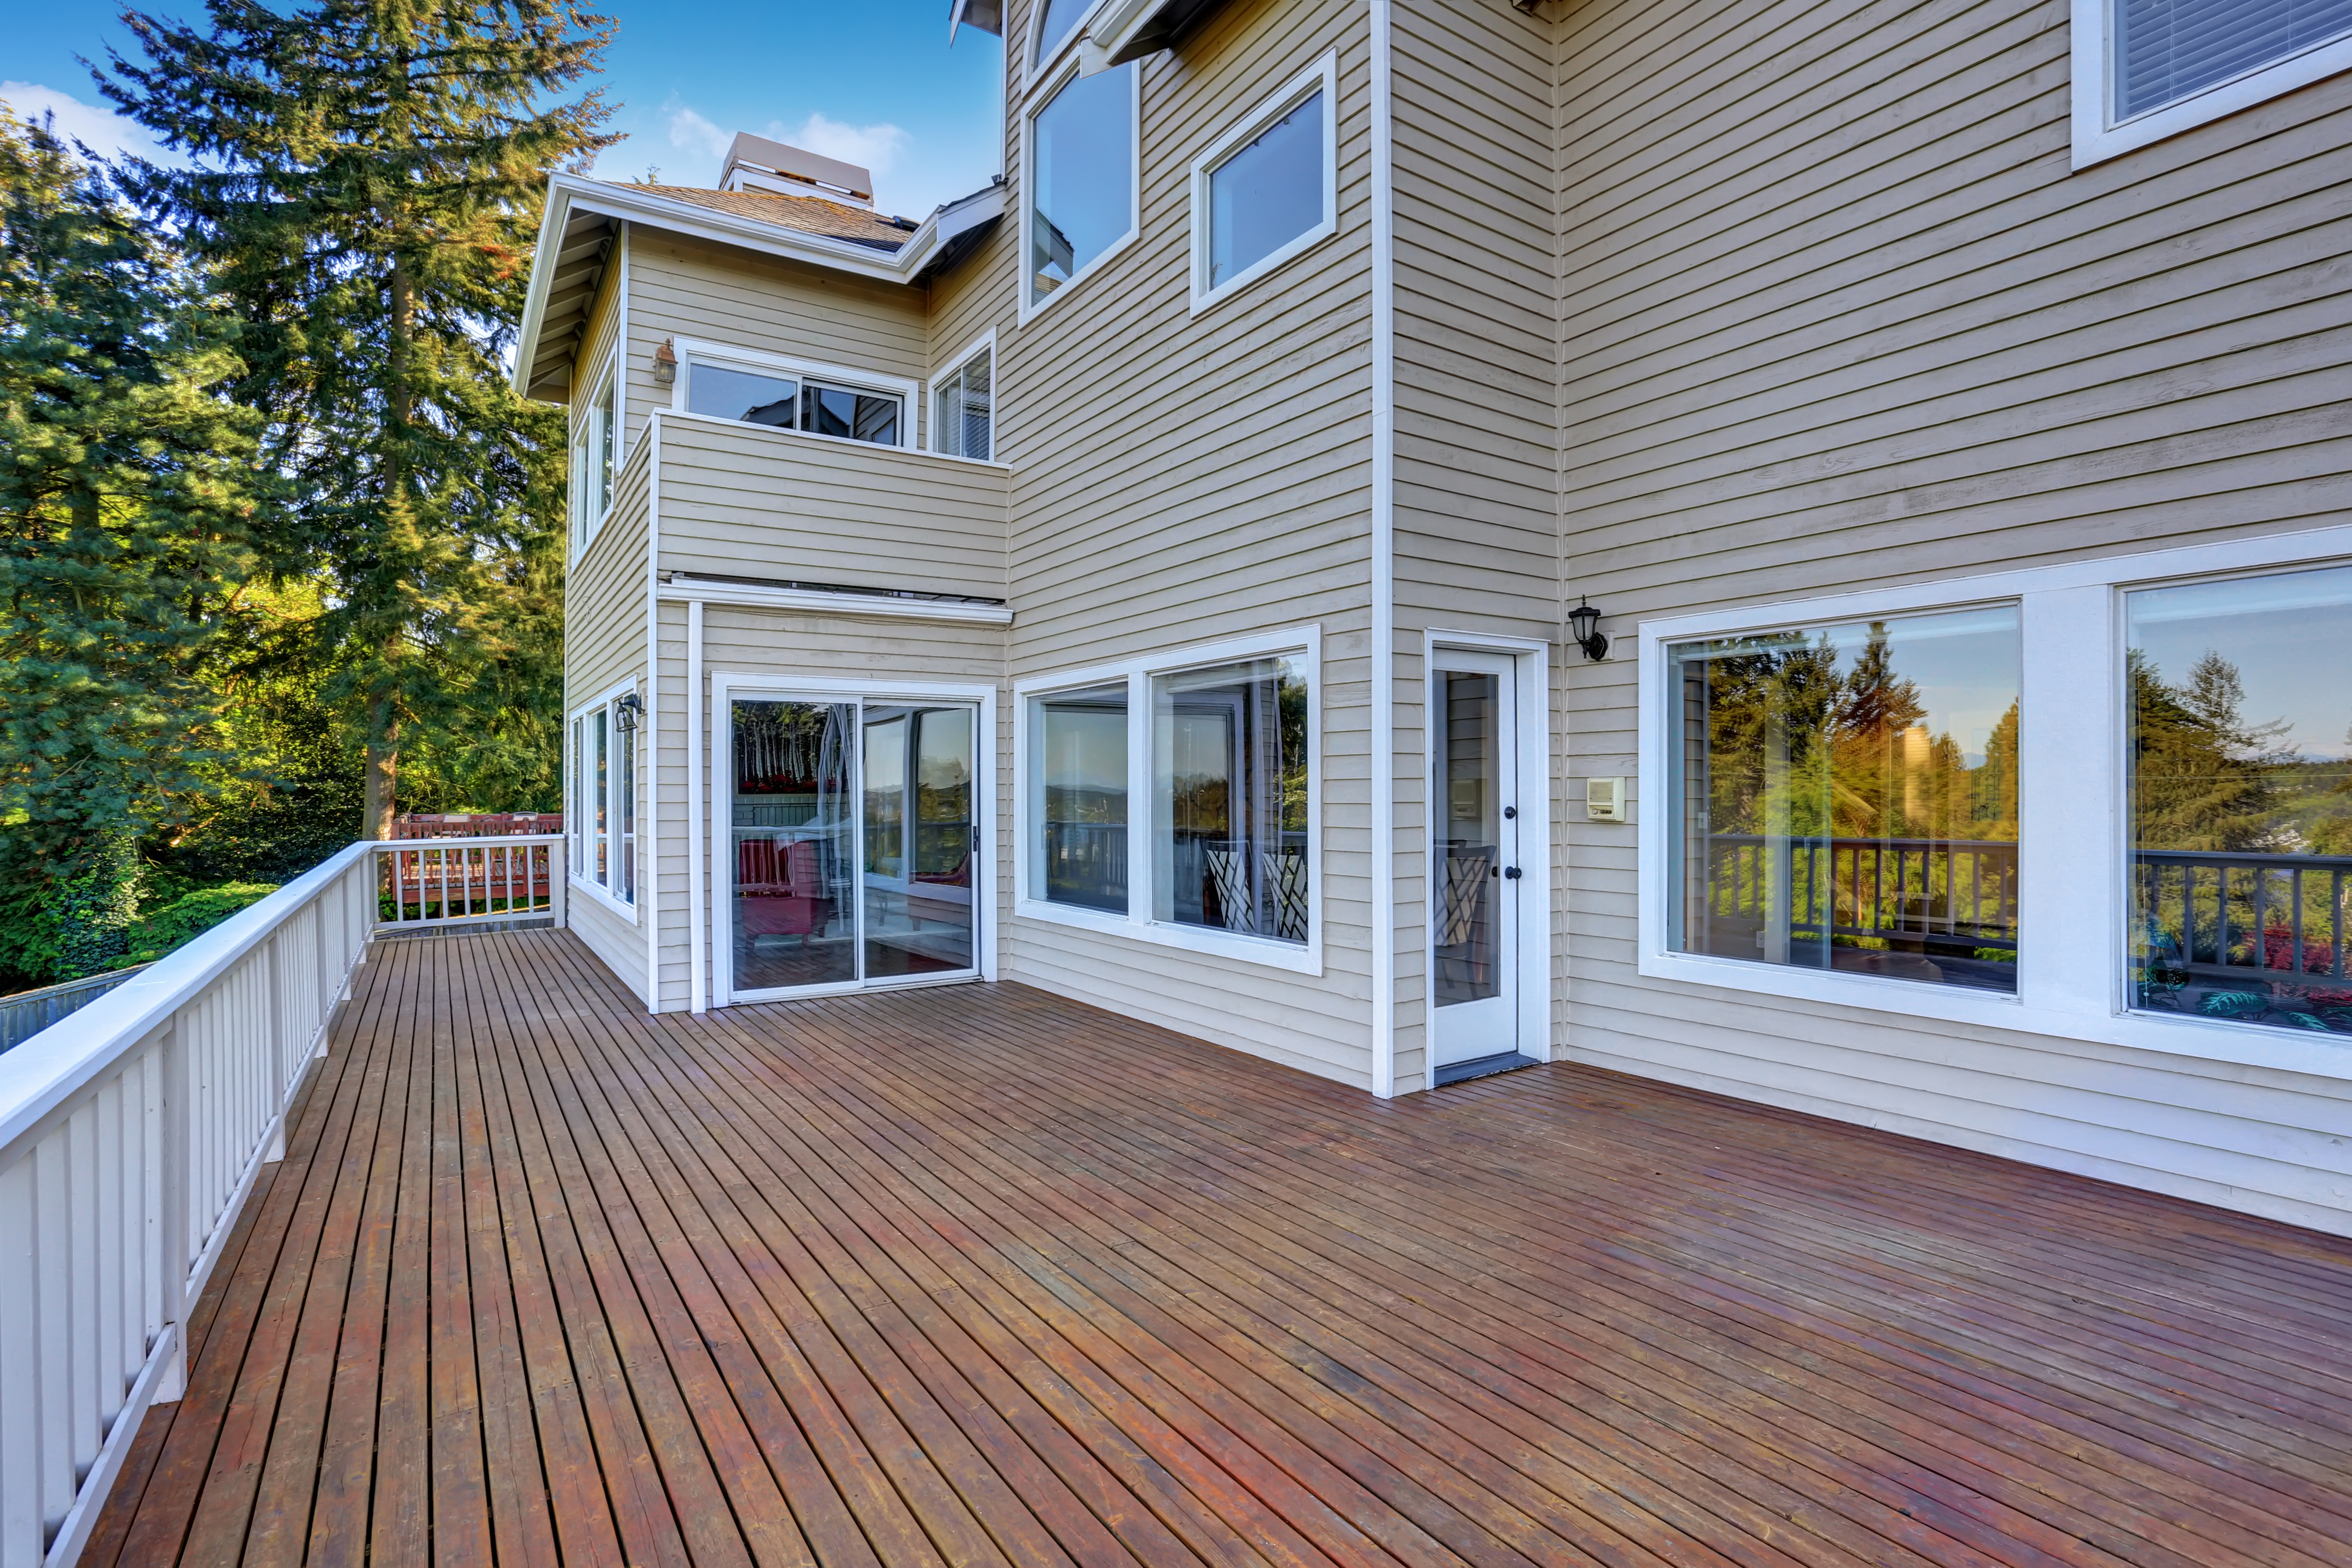 4 reasons to build a backyard deck